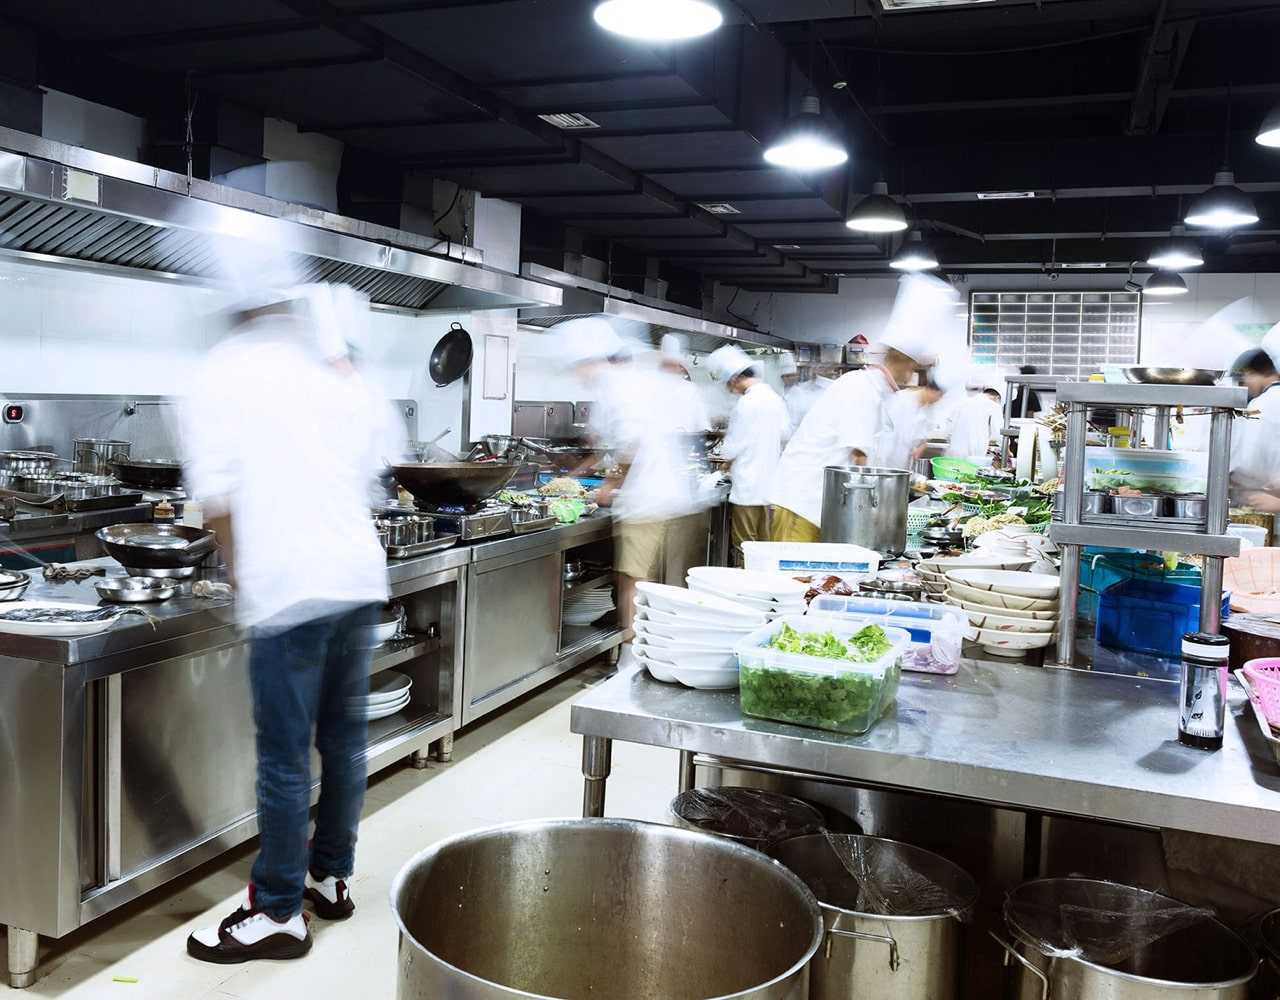 Cooks preparing food in a commercial kitchen.